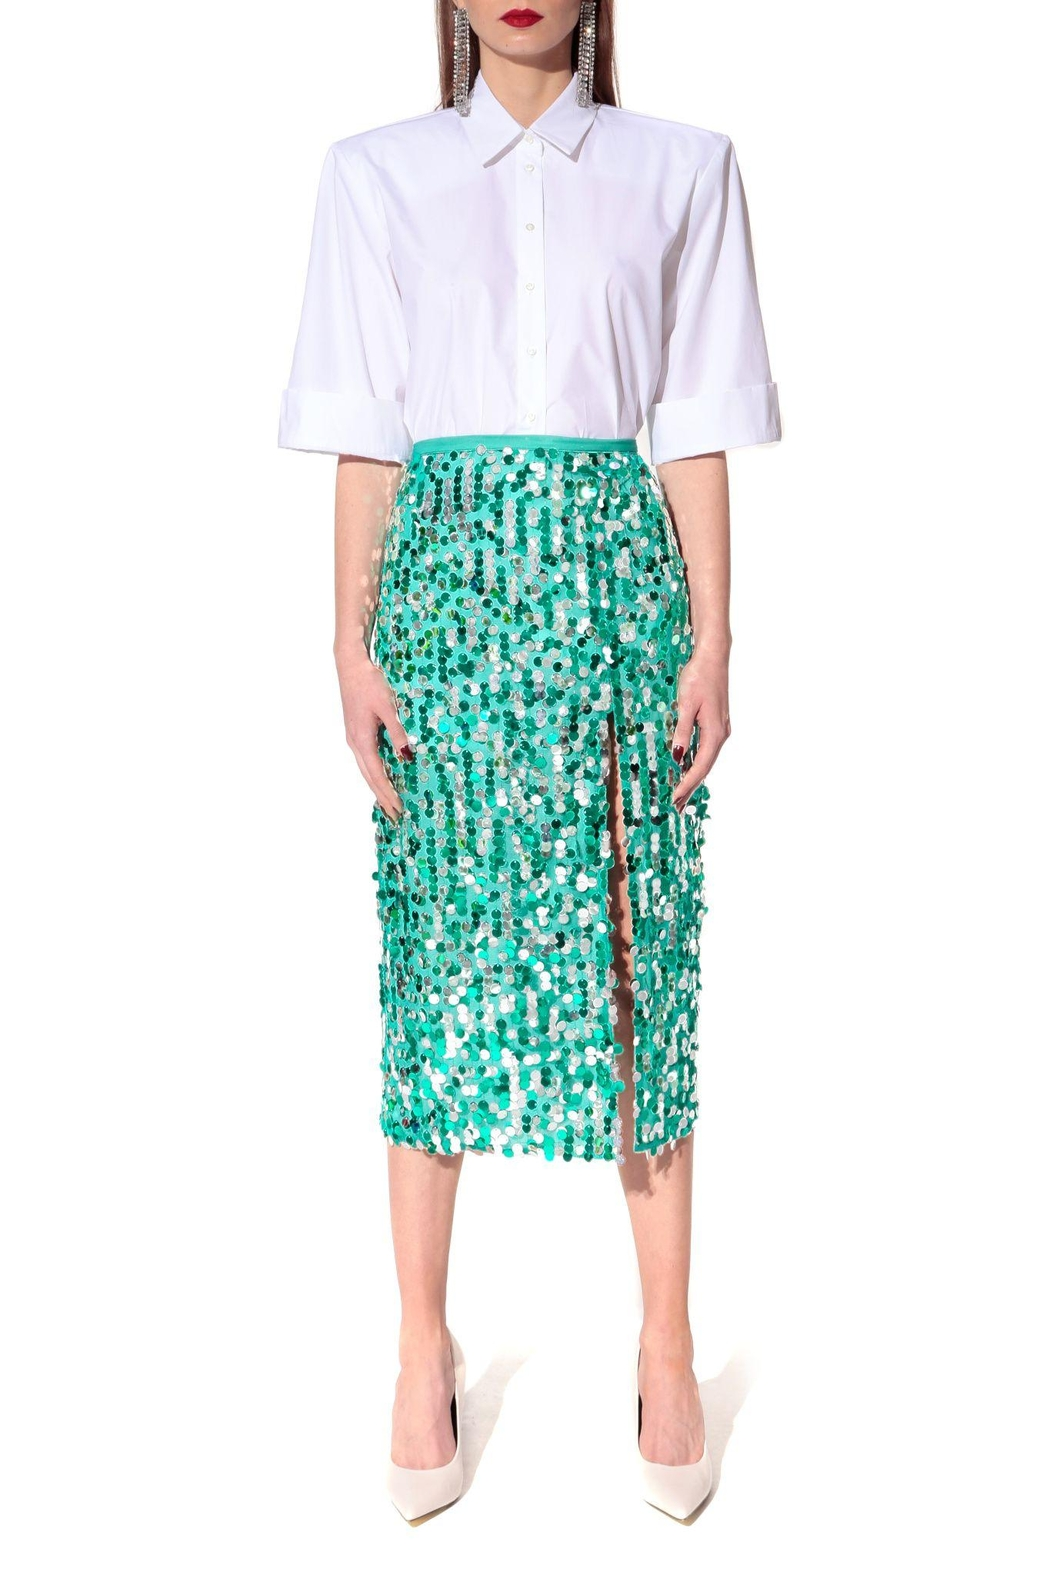 AGGI Skirt Layla Spectra Green - Side Cropped Image